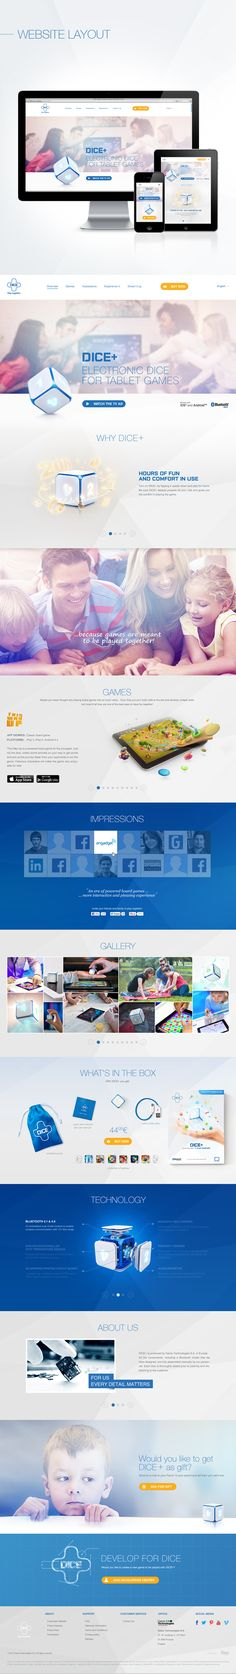 DICE+ by Fuse Collective , via Behance